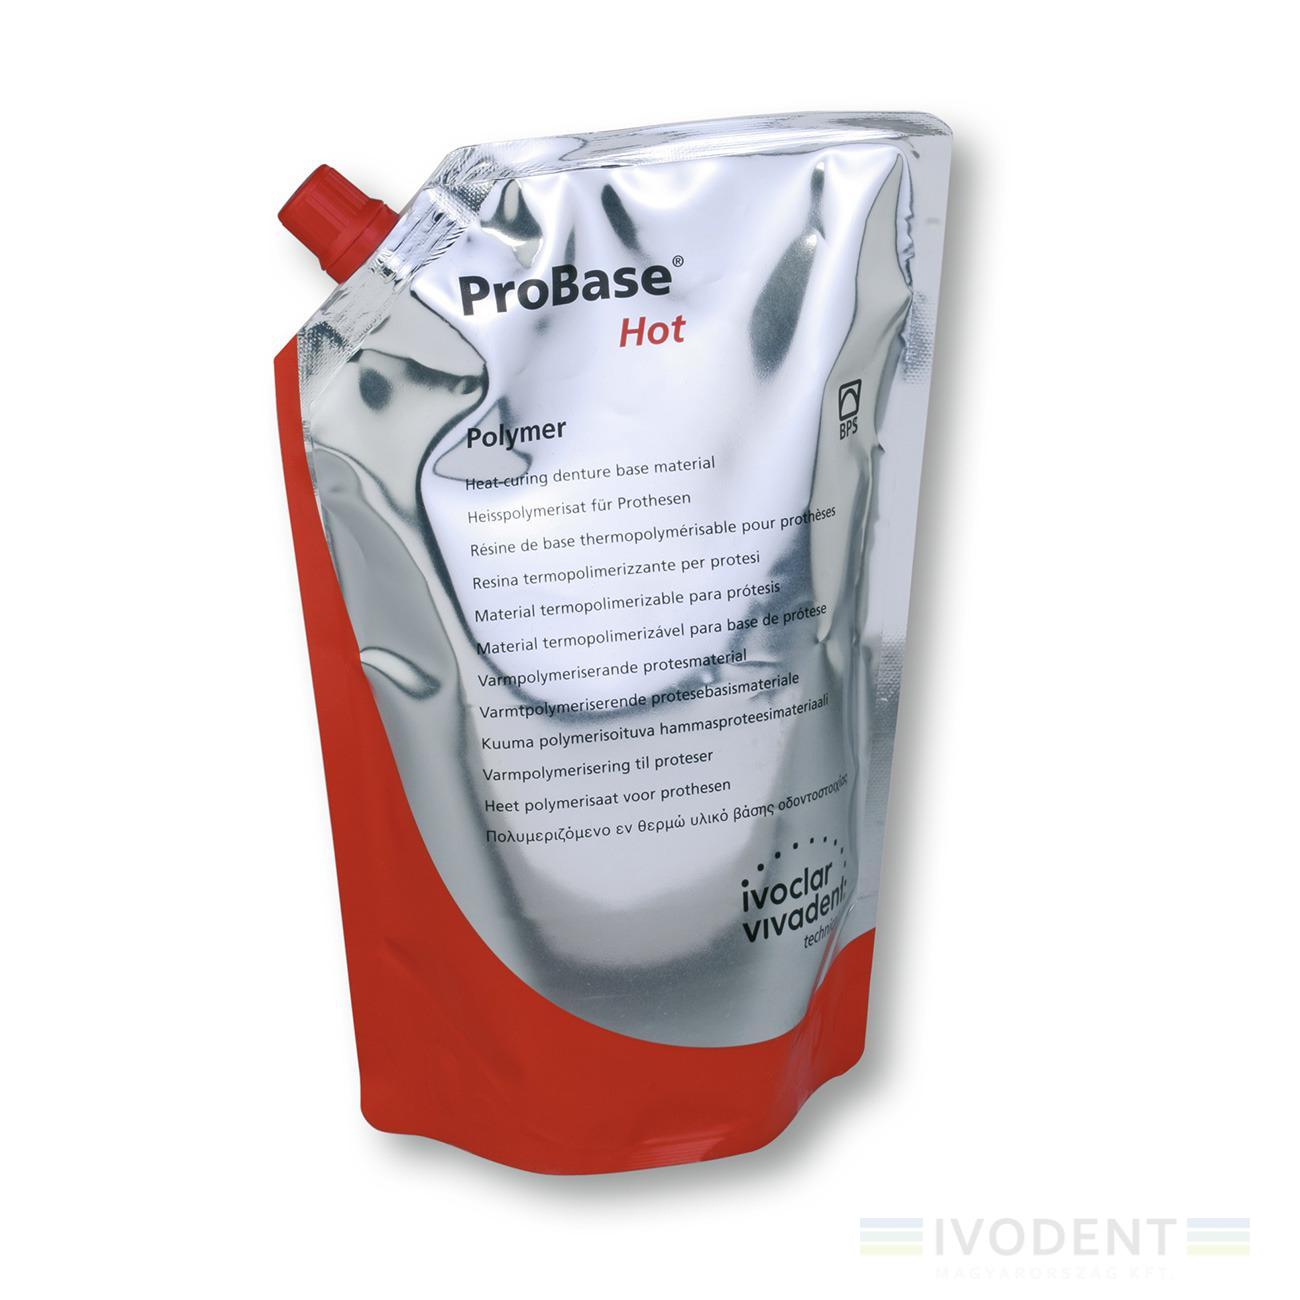 ProBase Hot Polymer 2x500 g clear